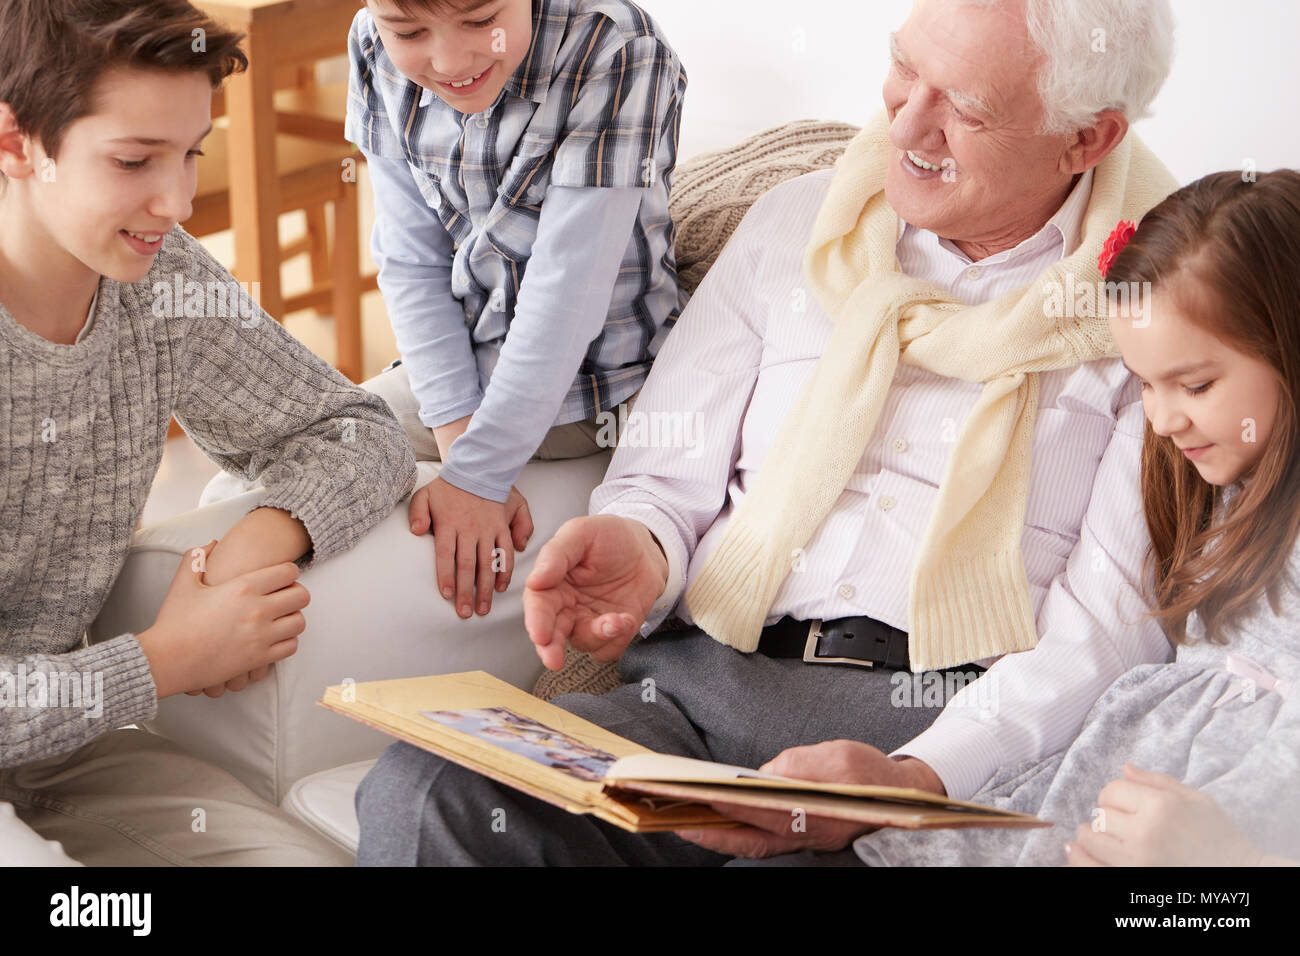 Happy children sitting on sofa with grandpa holding a photo album - Stock Image